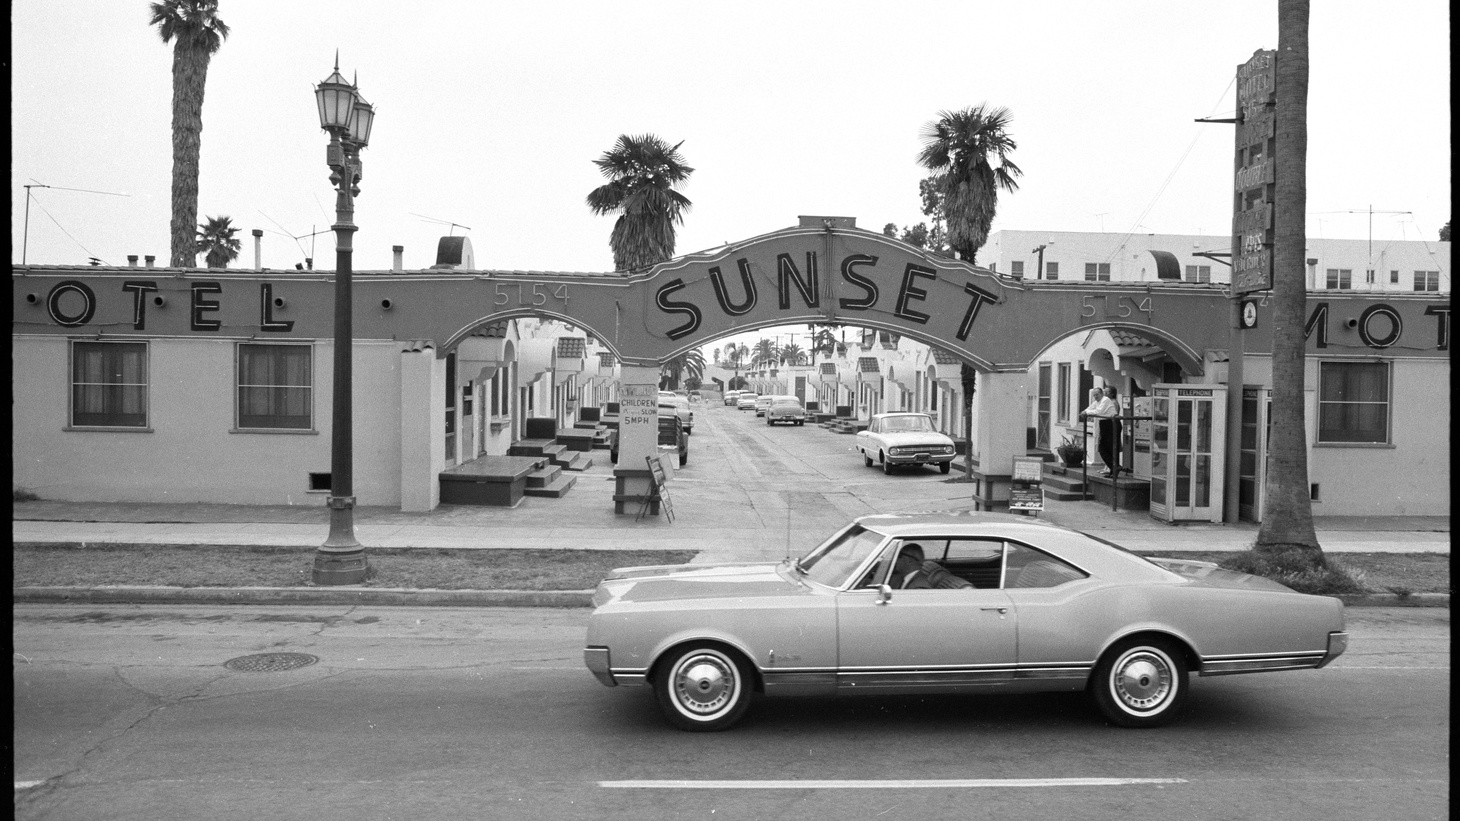 From Sunset Blvd, 1966, Ed Ruscha. Streets of Los Angeles Archive.